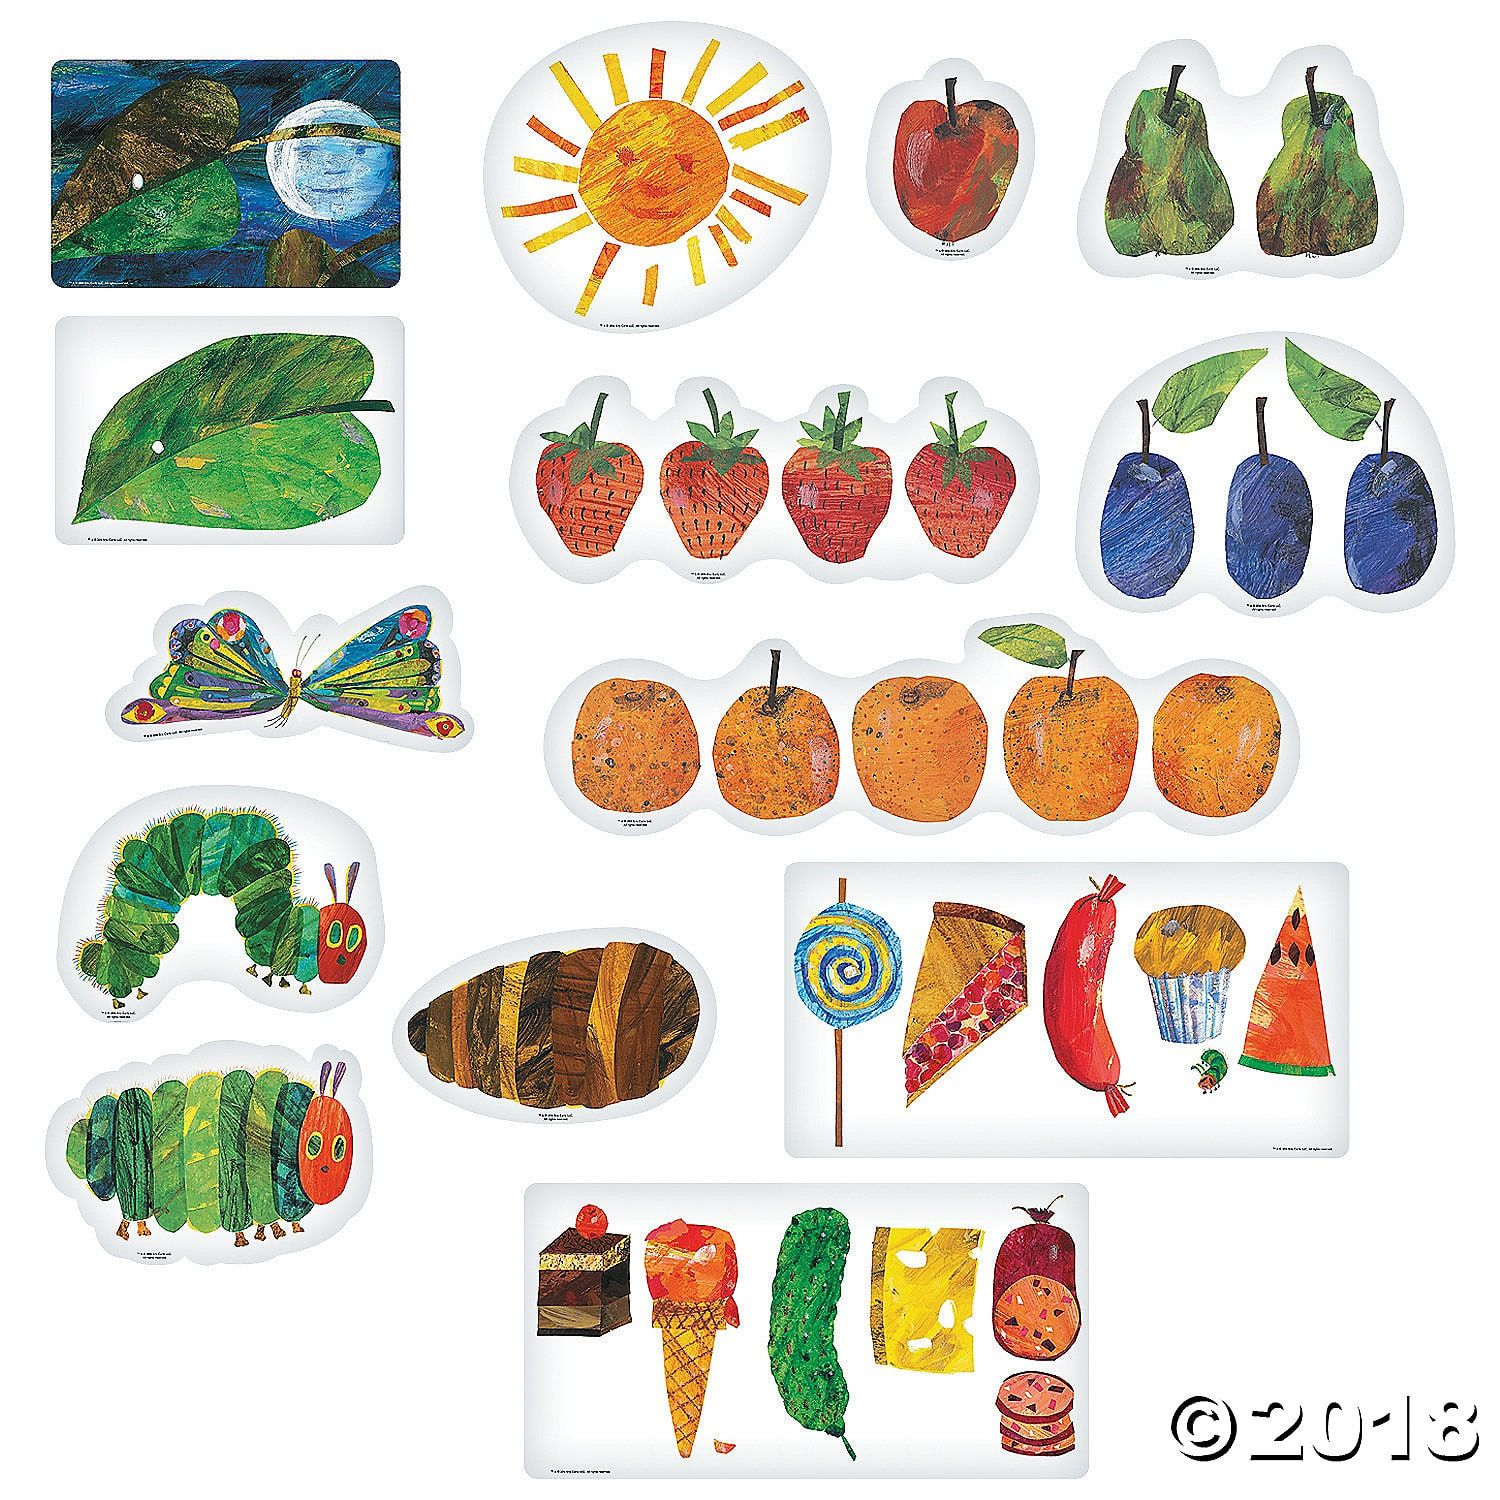 The Very Hungry Caterpillar Storytelling Magnets